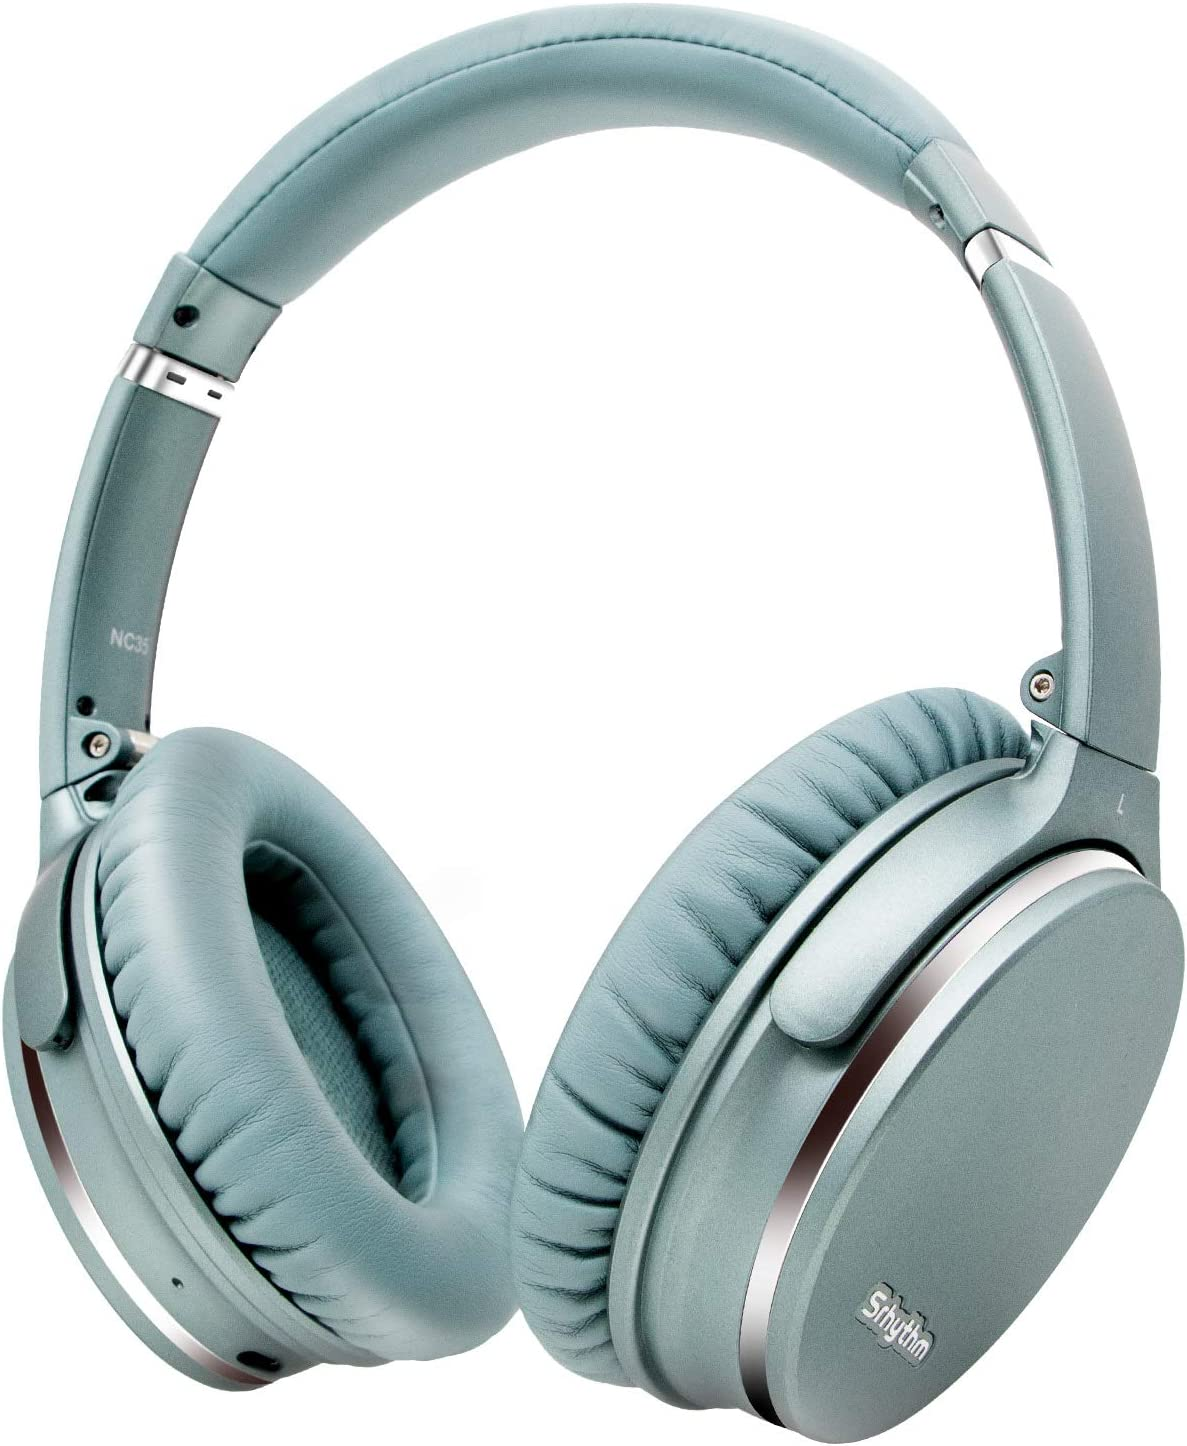 Noise Cancelling Headphones Wireless Bluetooth 5.0, Fast Charge Over Ear Lightweight Srhythm NC35 Headset with Microphones,Mega Bass 40+ Hours' Playtime -Low Latency